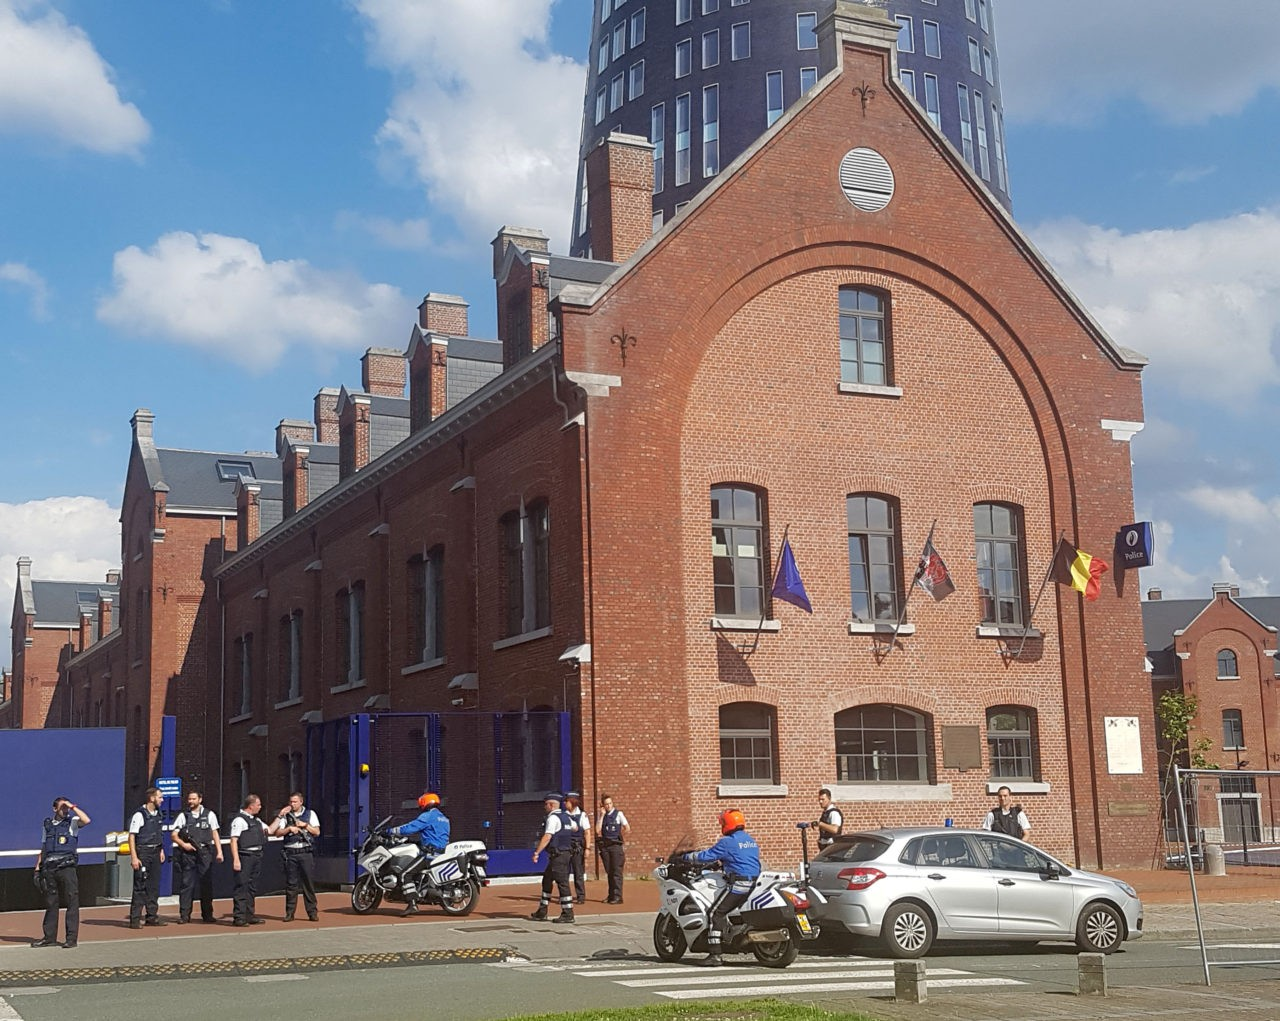 """A photo taken with a mobile phone on August 6, 2016, shows police securing the area around a police building in the southern Belgian city of Charleroi following a machete attack. Two policewomen were wounded in Charleroi by a machete-wielding man who shouted """"Allahu akbar"""" (God is the greatest), local police said. The attacker was shot and injured, they said on Twitter. / AFP / BELGA AND Belga / FRED DUBOIS / Belgium OUT (Photo credit should read FRED DUBOIS/AFP/Getty Images)"""